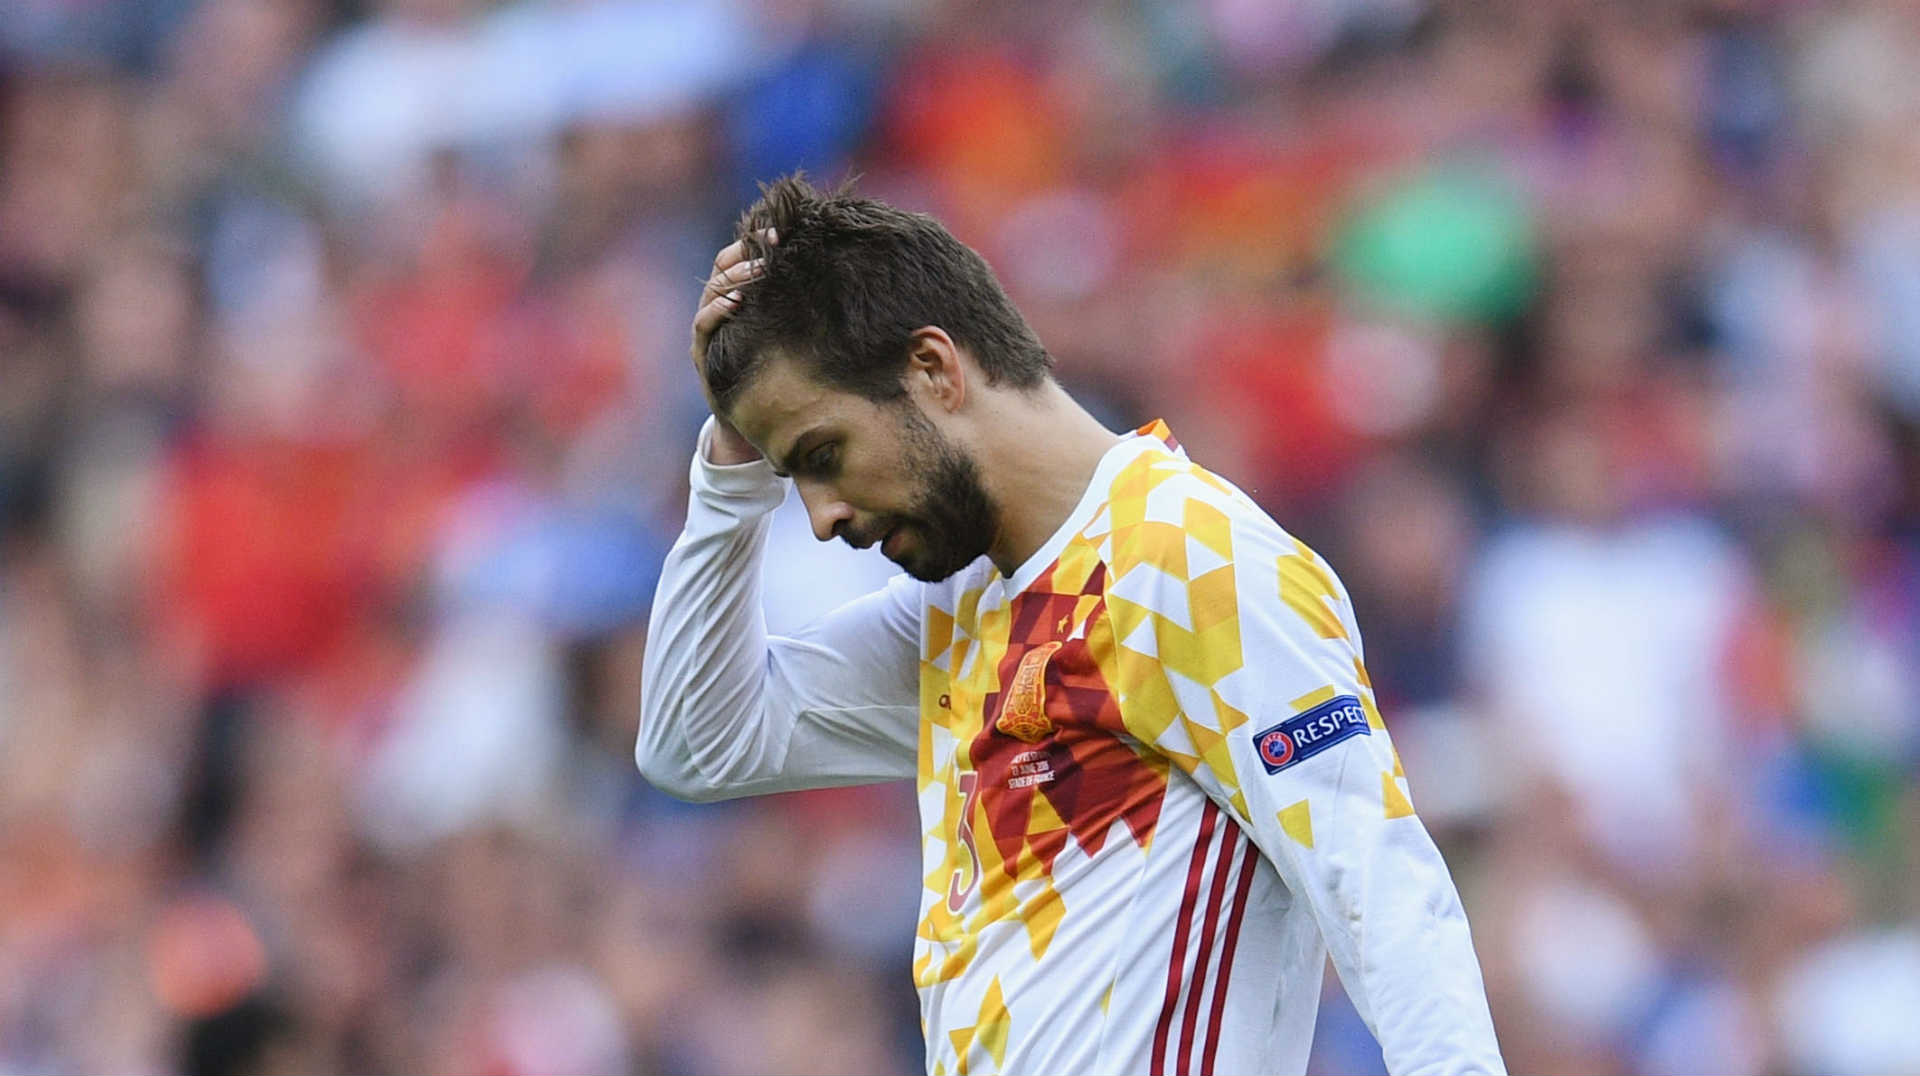 GettyImages-543308290 Pique